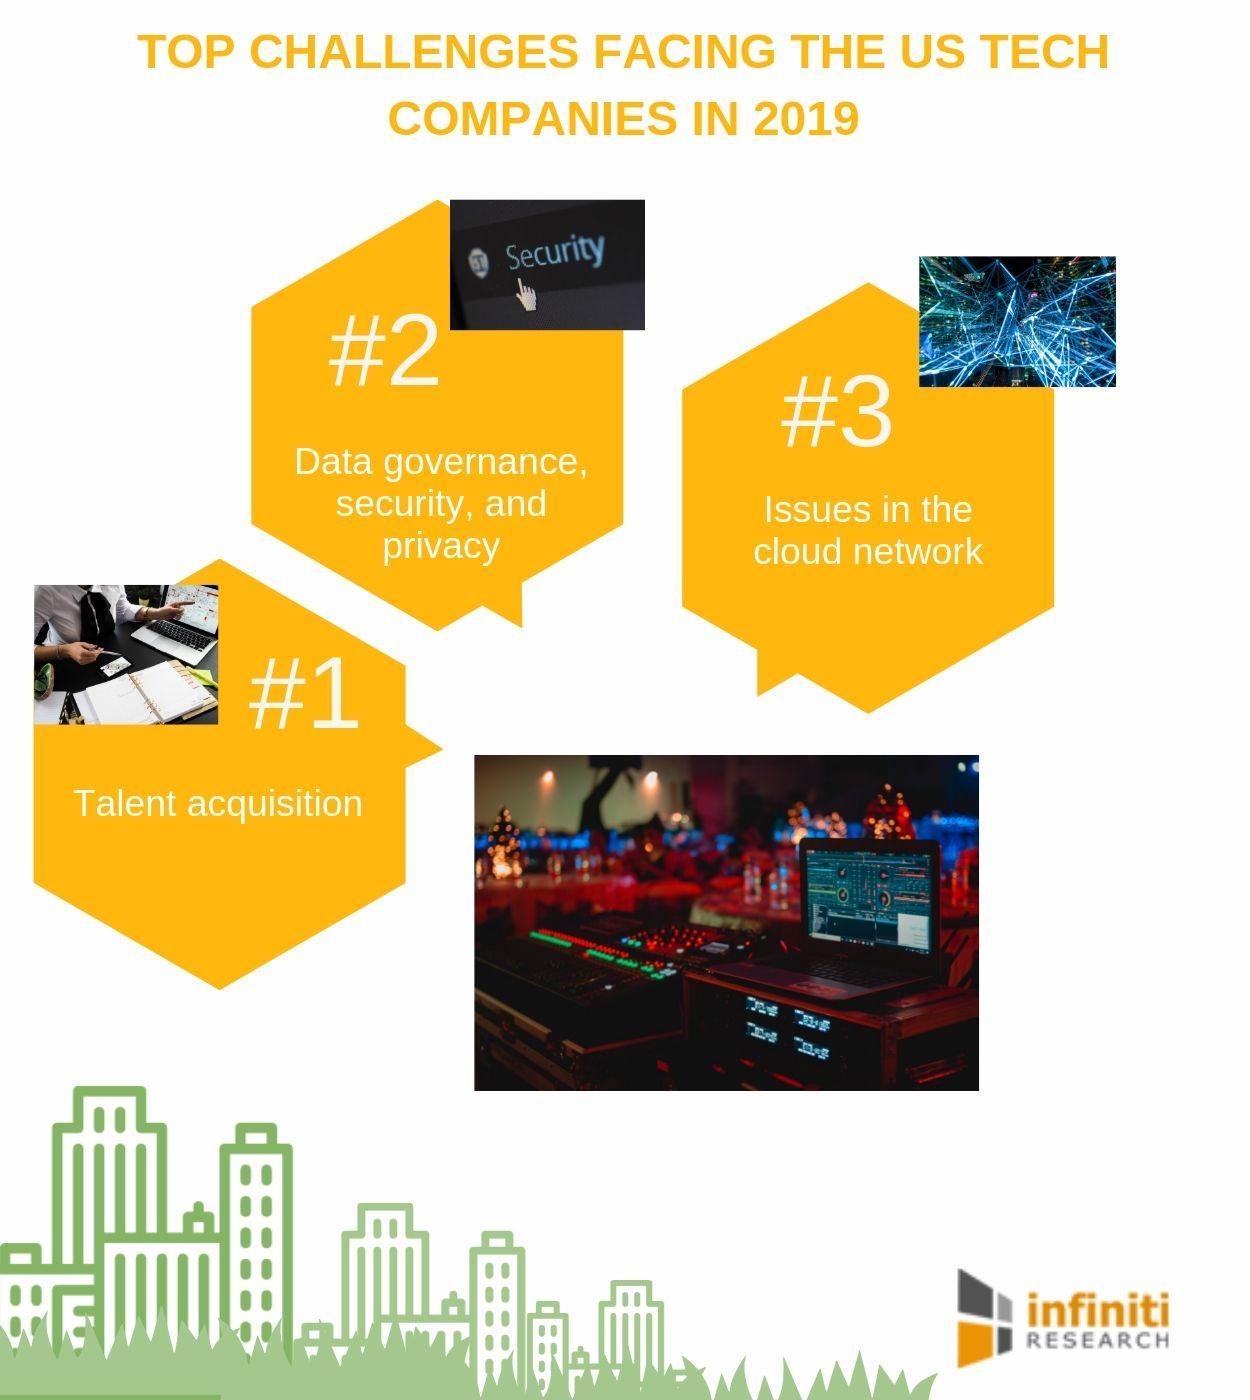 Top Challenges Facing US Tech Companies in 2019 | Infiniti's Latest